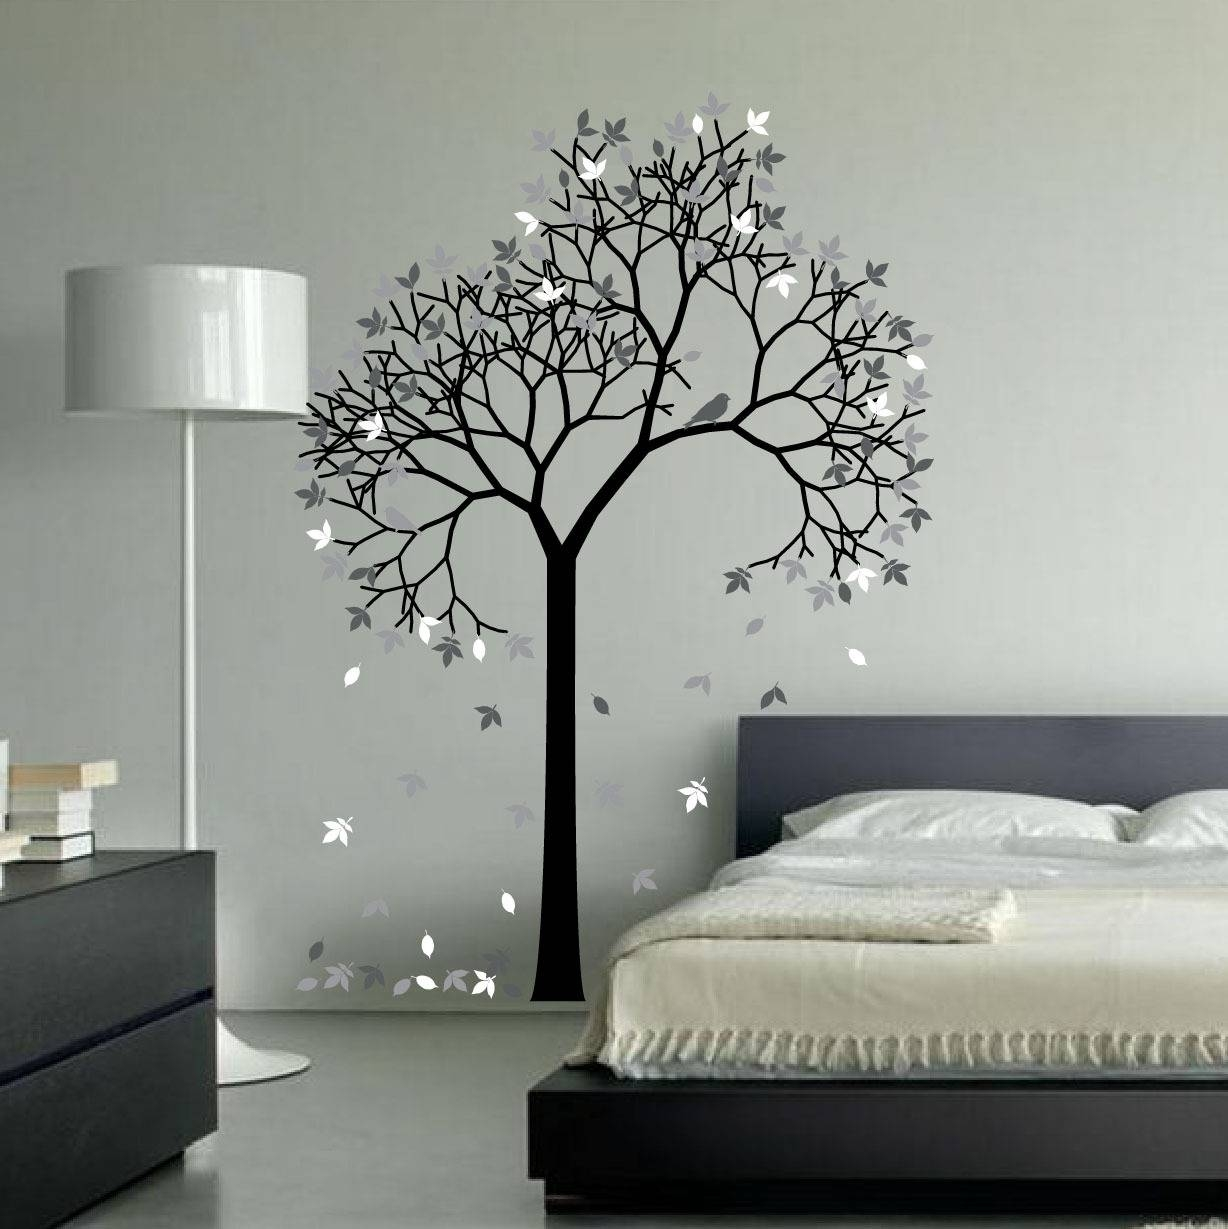 Wall Art Designs: Aspen Tree Wall Art Aspen Tree Decor, Aspen Regarding Most Recently Released Painted Trees Wall Art (View 17 of 20)